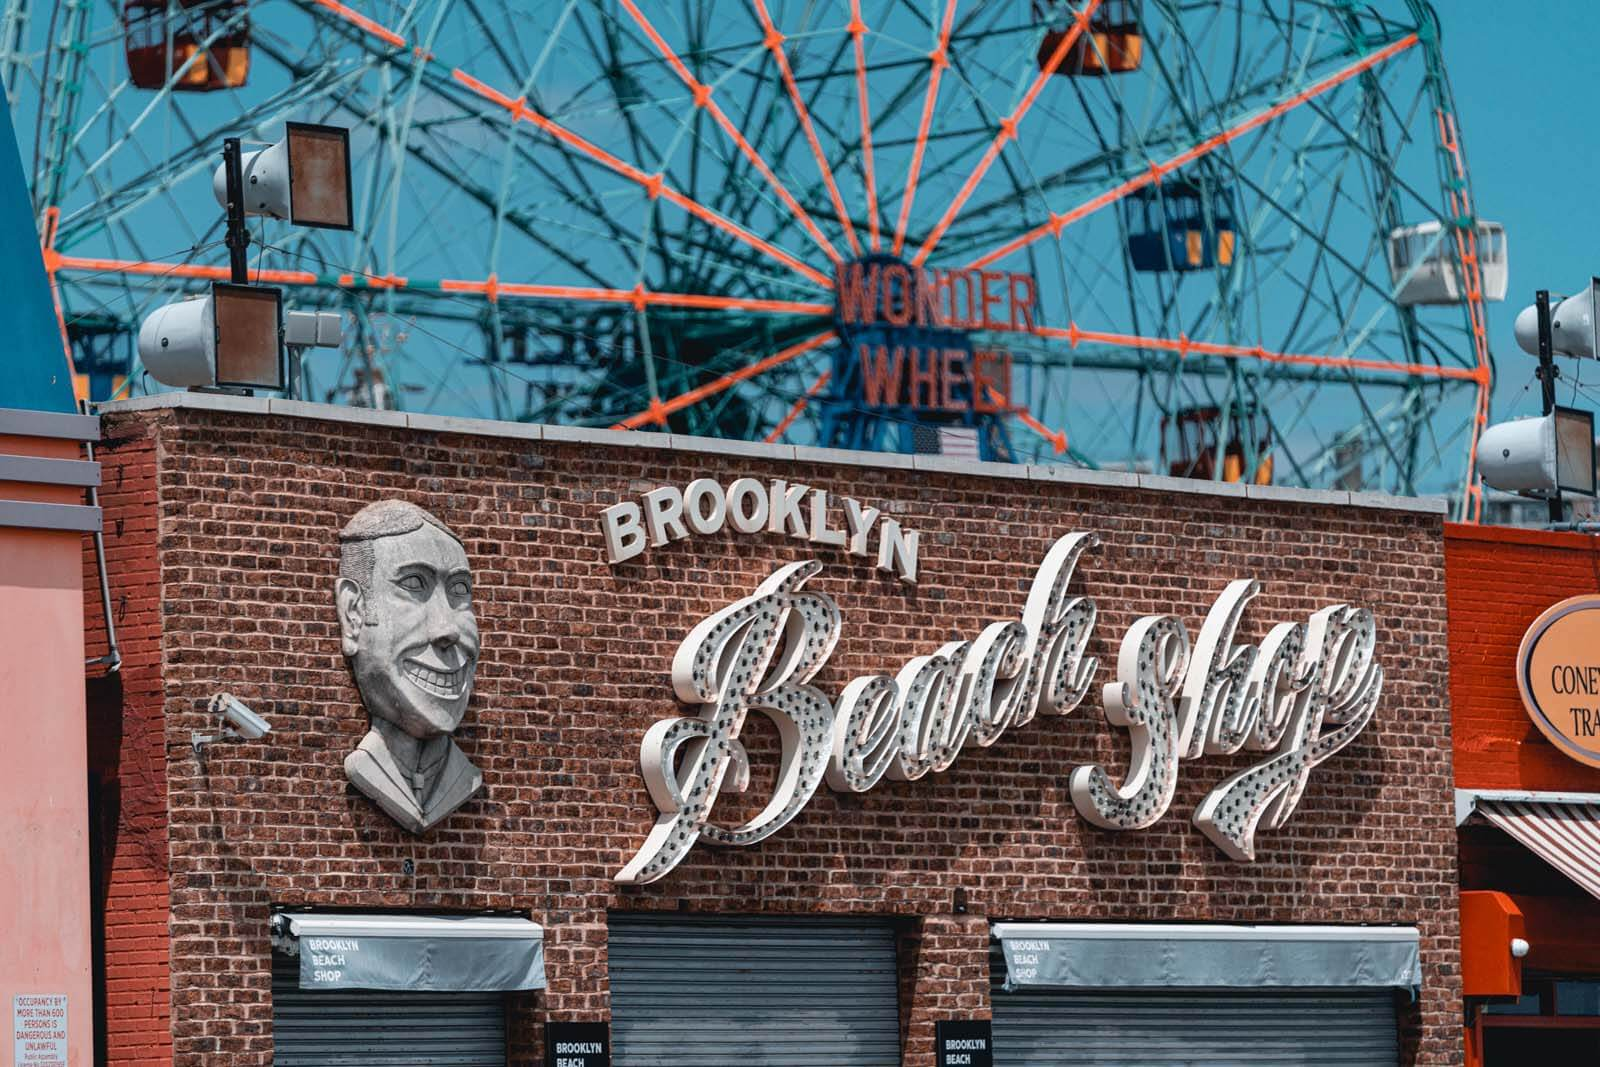 Brooklyn Beach Shop and Wonder Wheel view at Coney Island